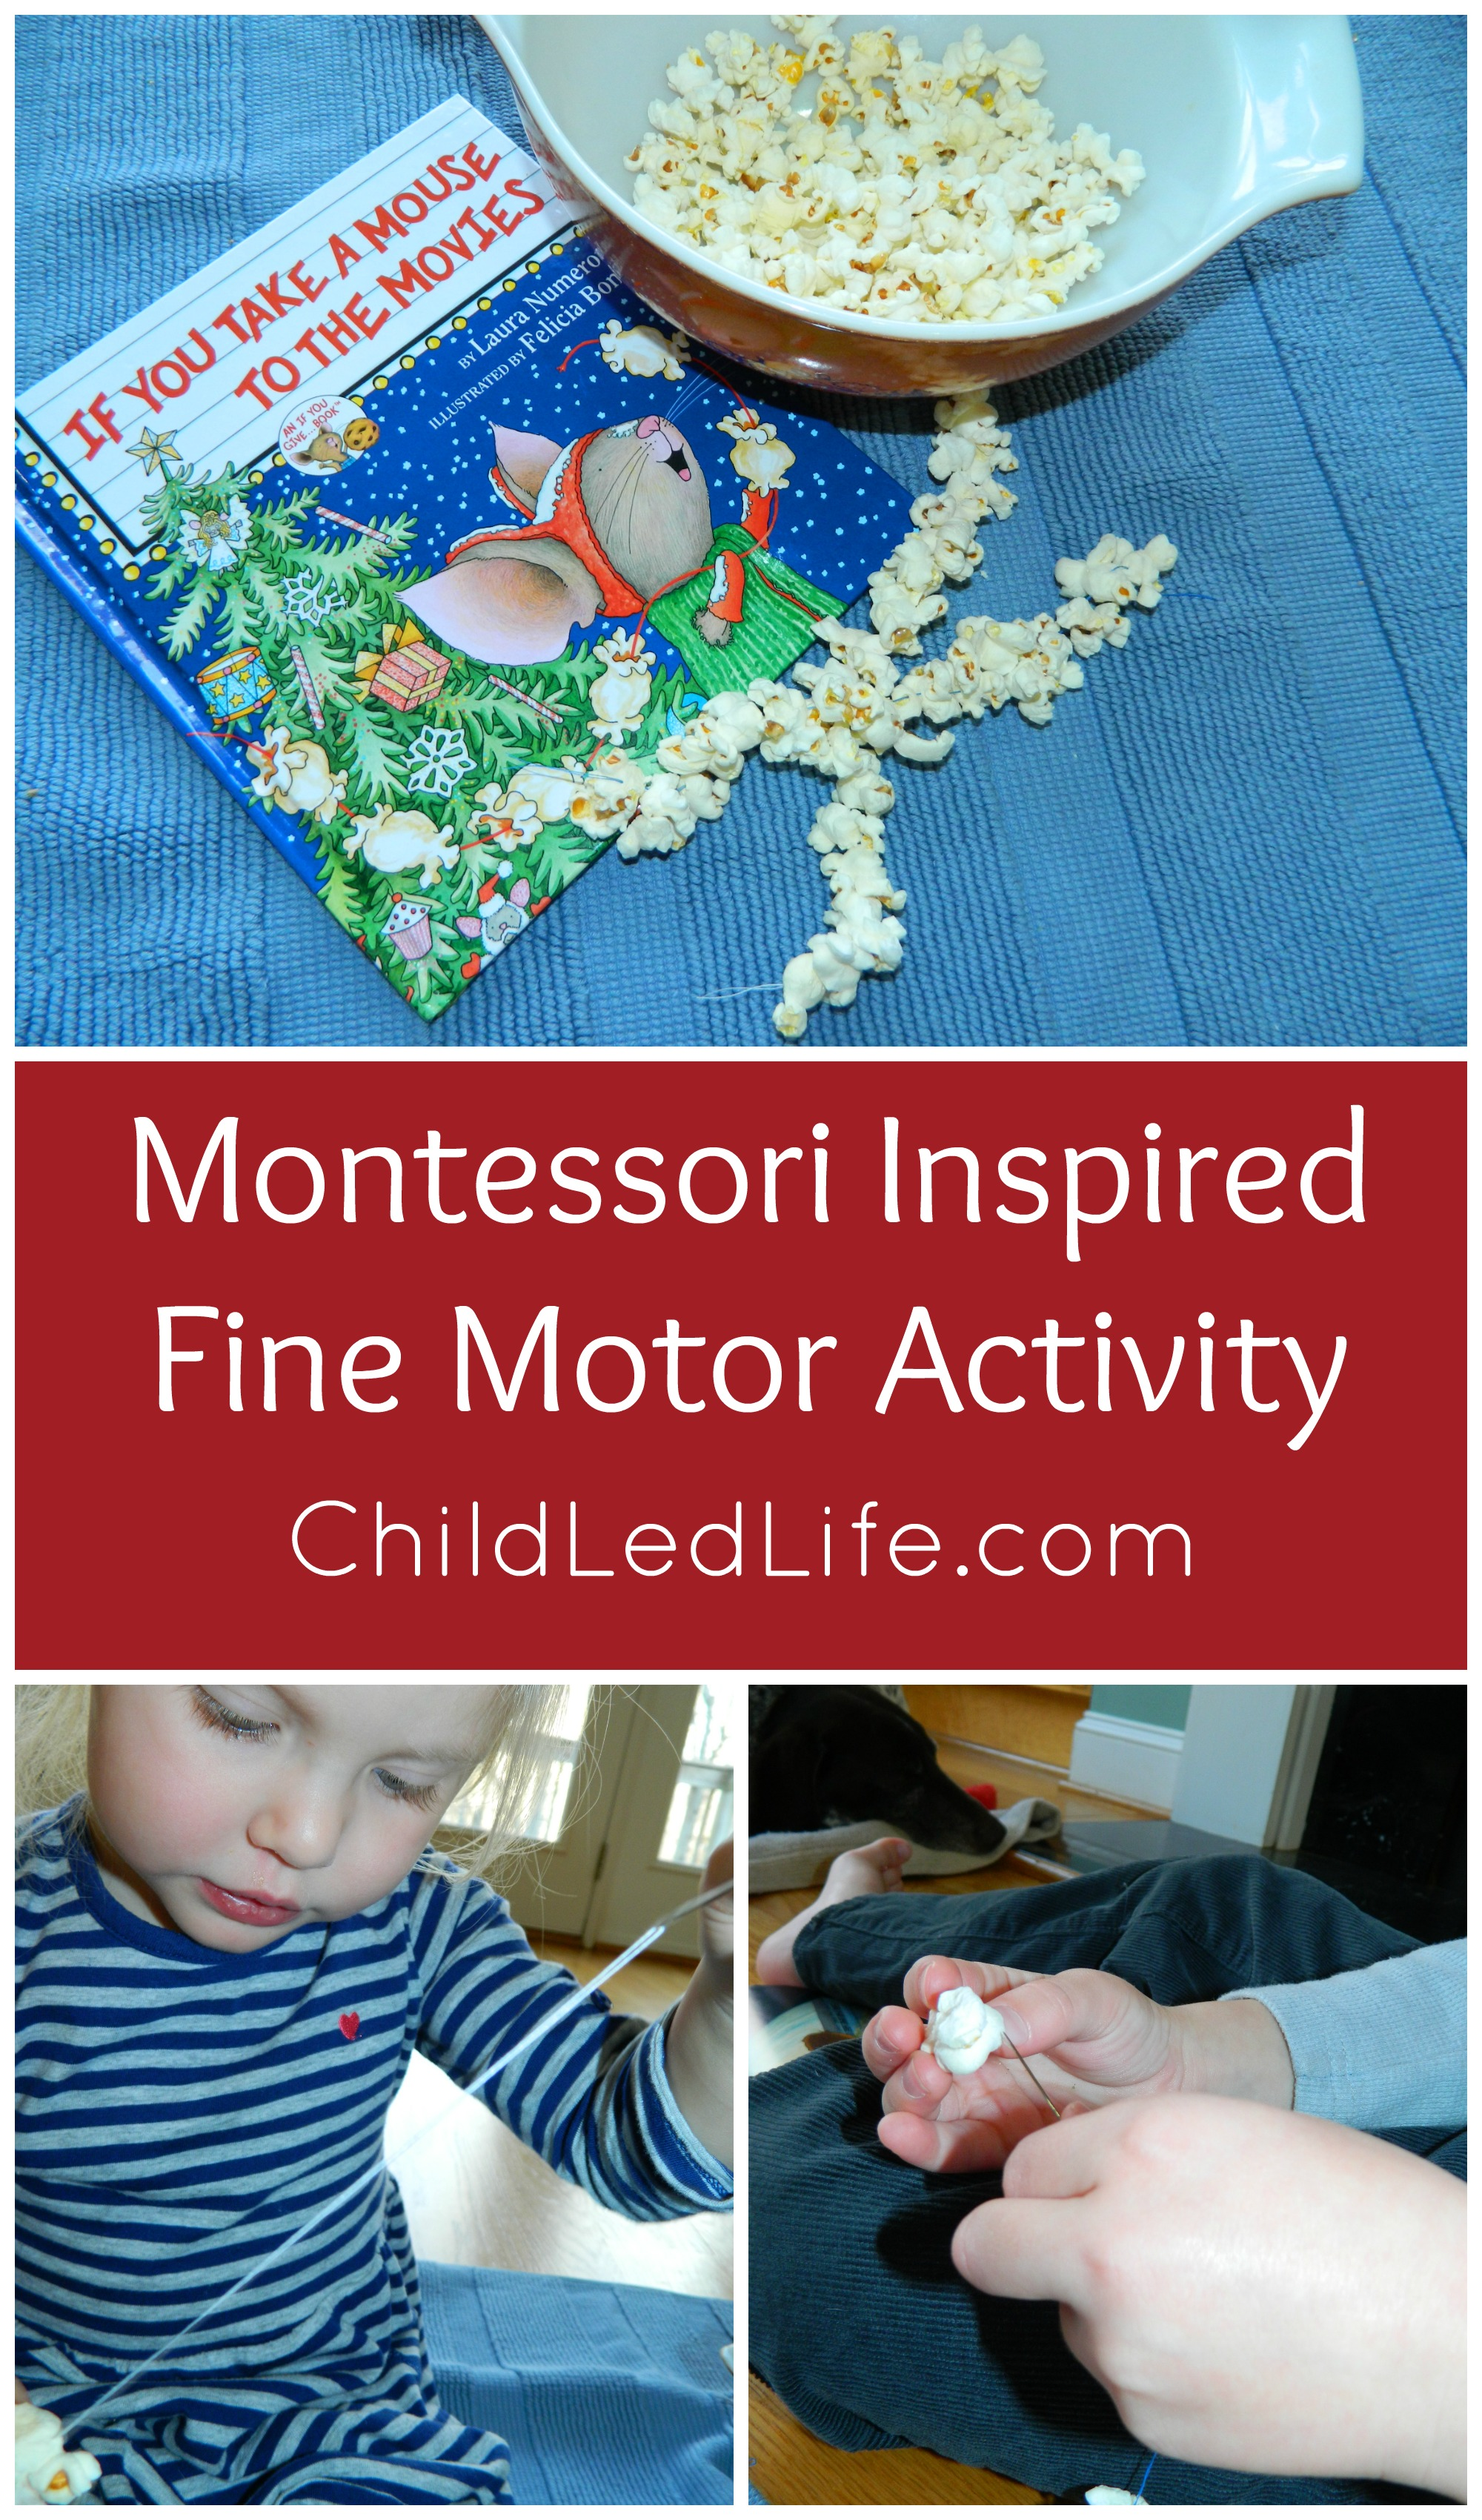 Montessori Inspired Fine Motor Activity